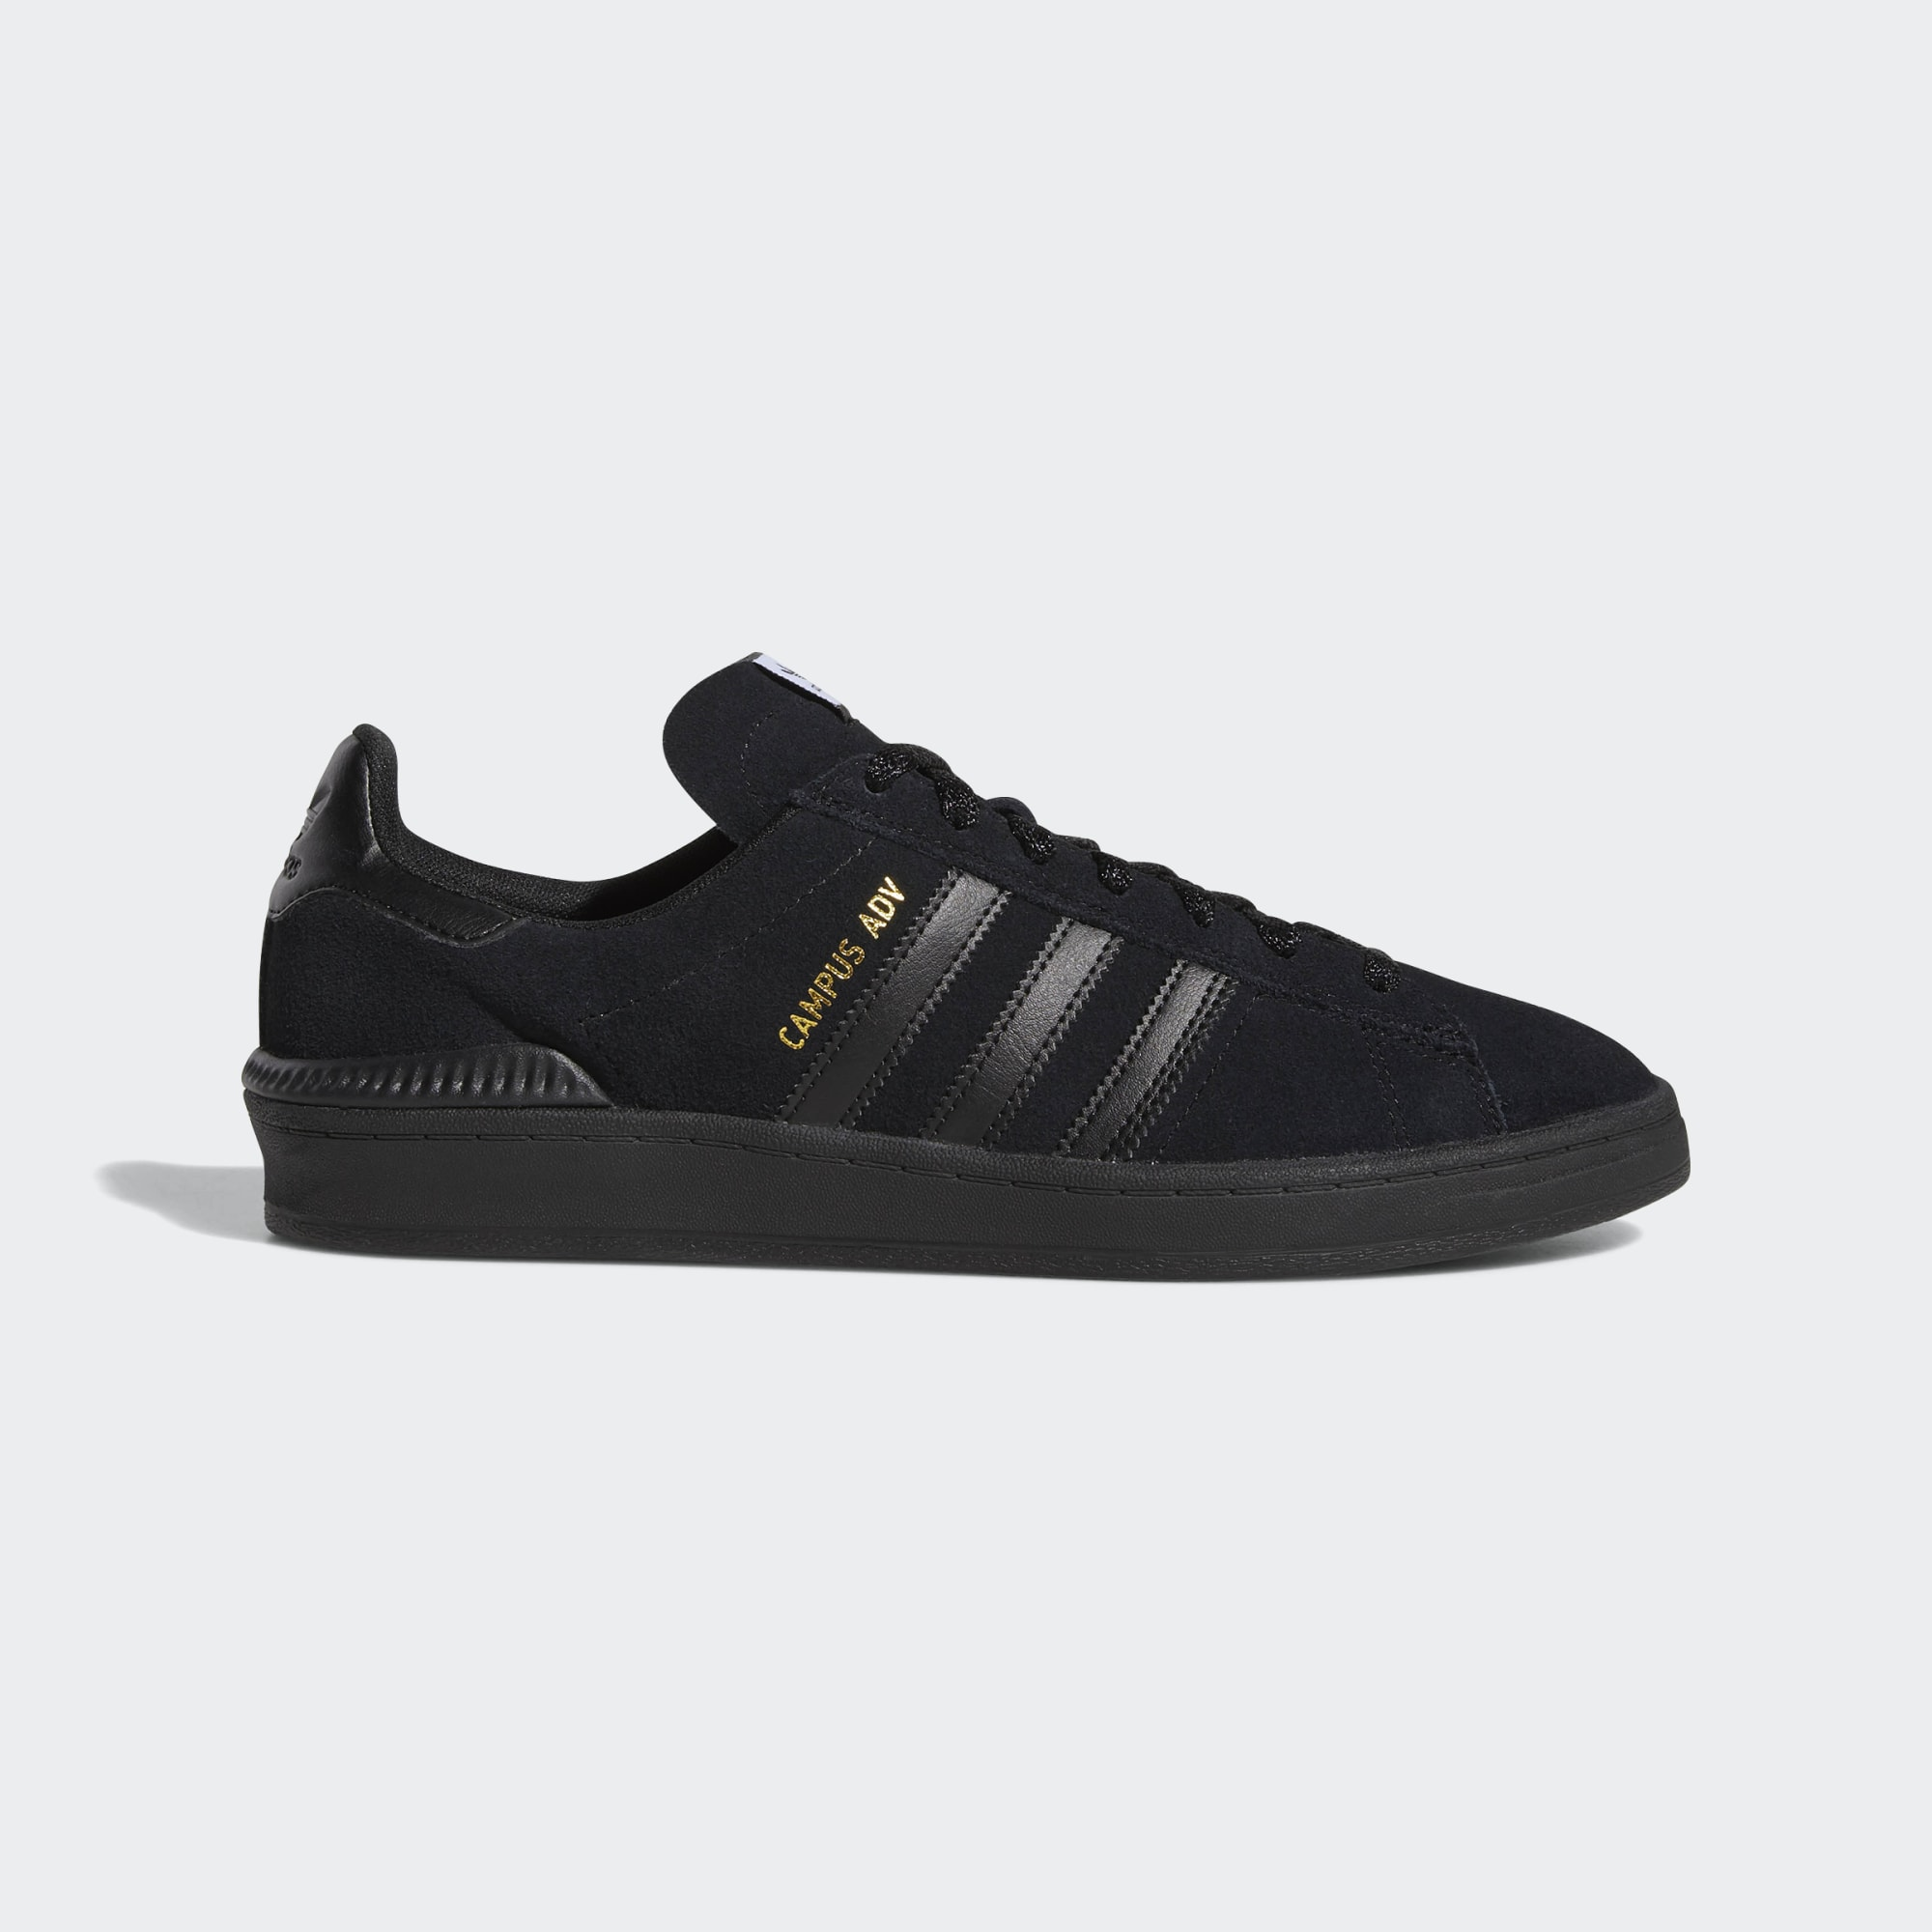 Adidas Campus ADV Shoes - Core Black / Ftwr White / Gold Met